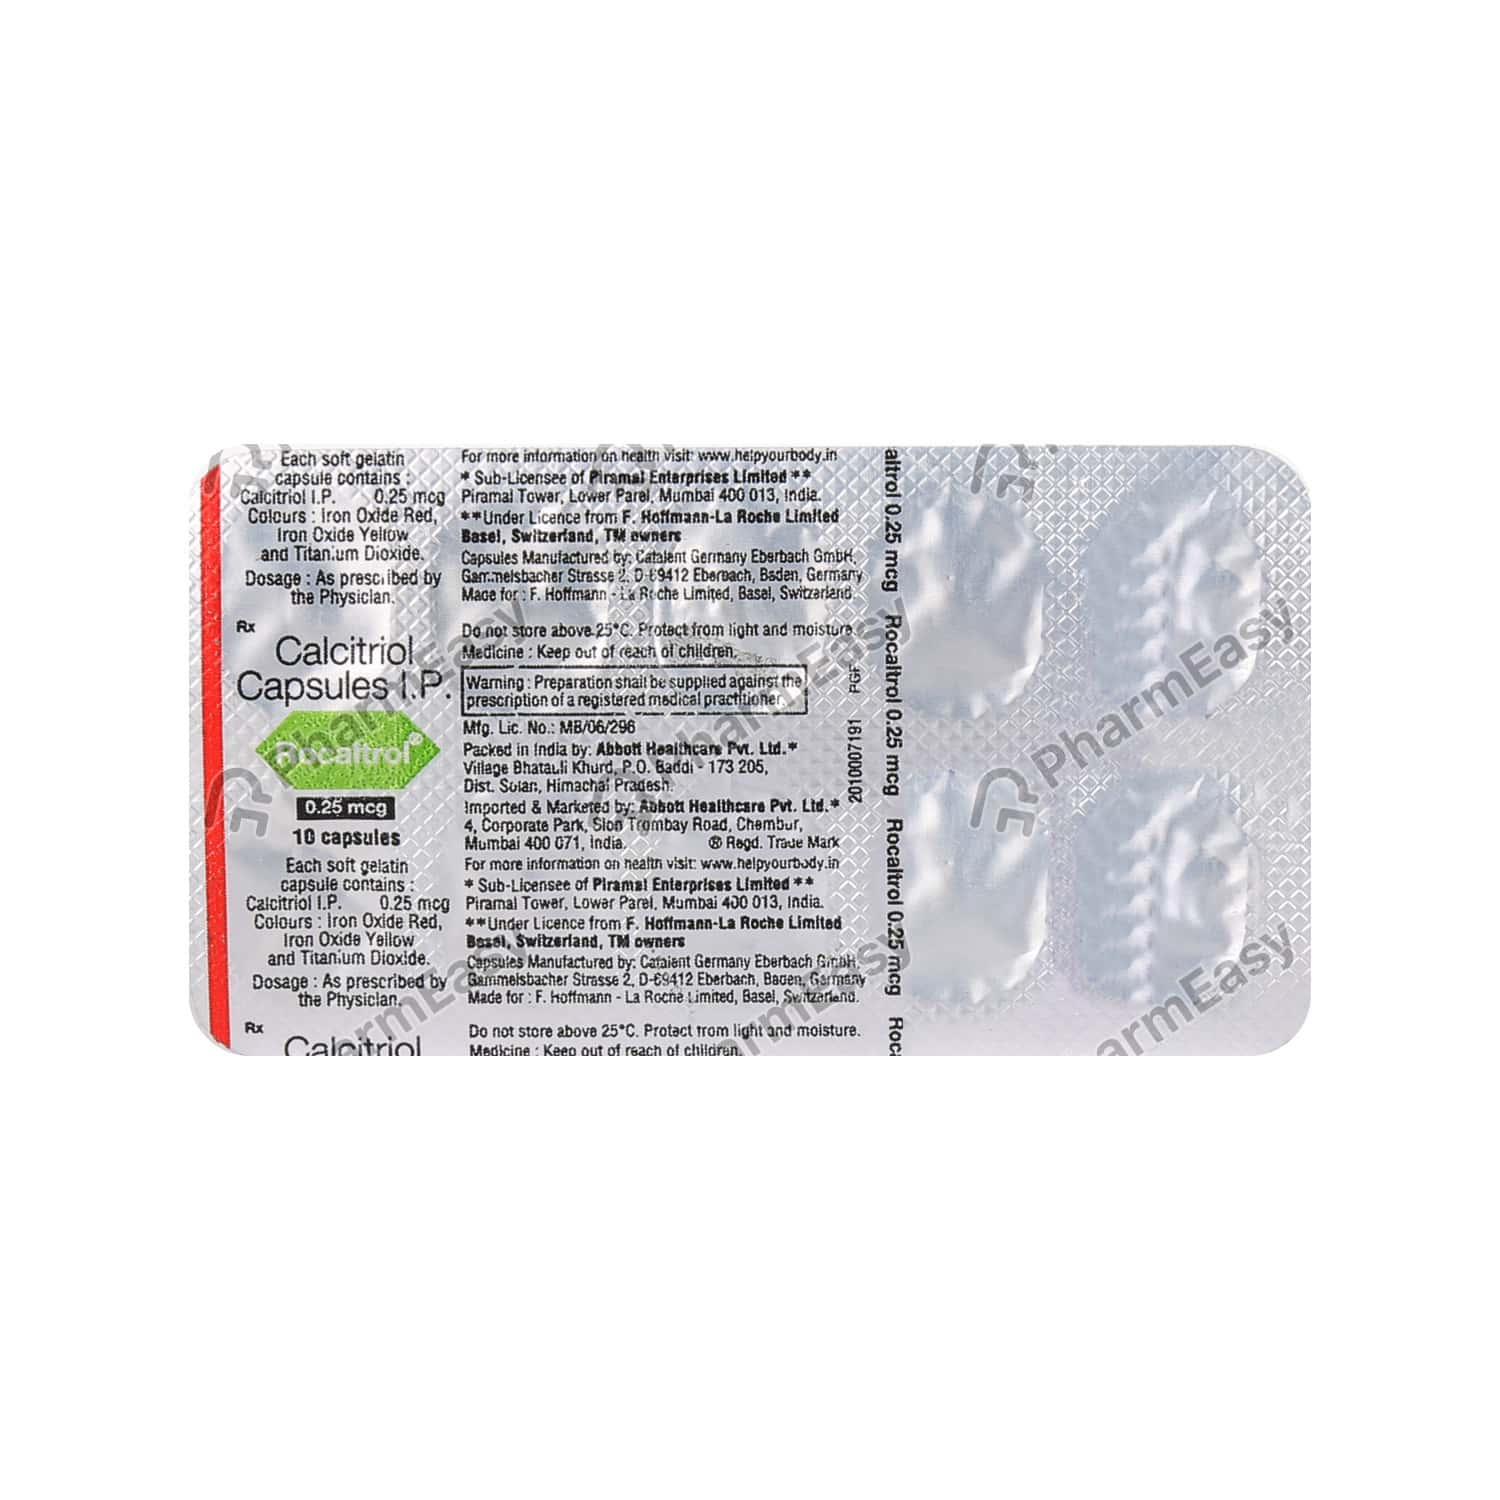 Rocaltrol 0.25mcg Strip Of 10 Capsules